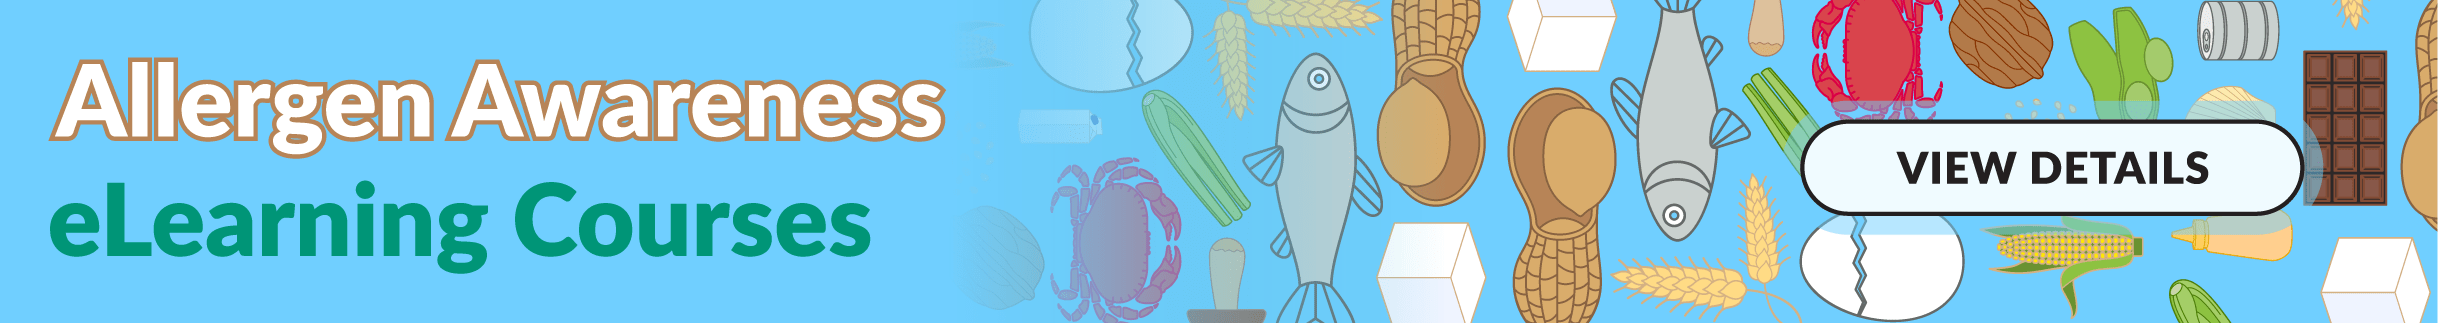 Food Allergy Course Banner Image